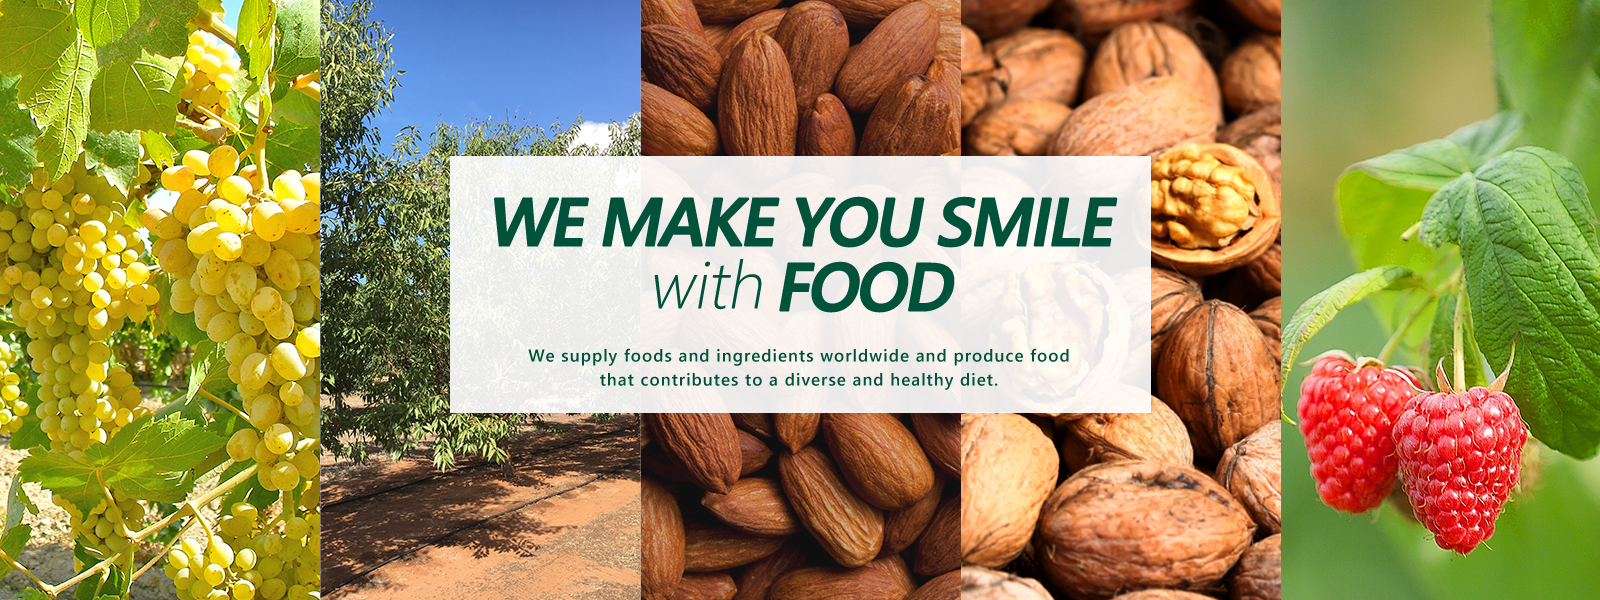 MAKE YOU SMILE with FOOD